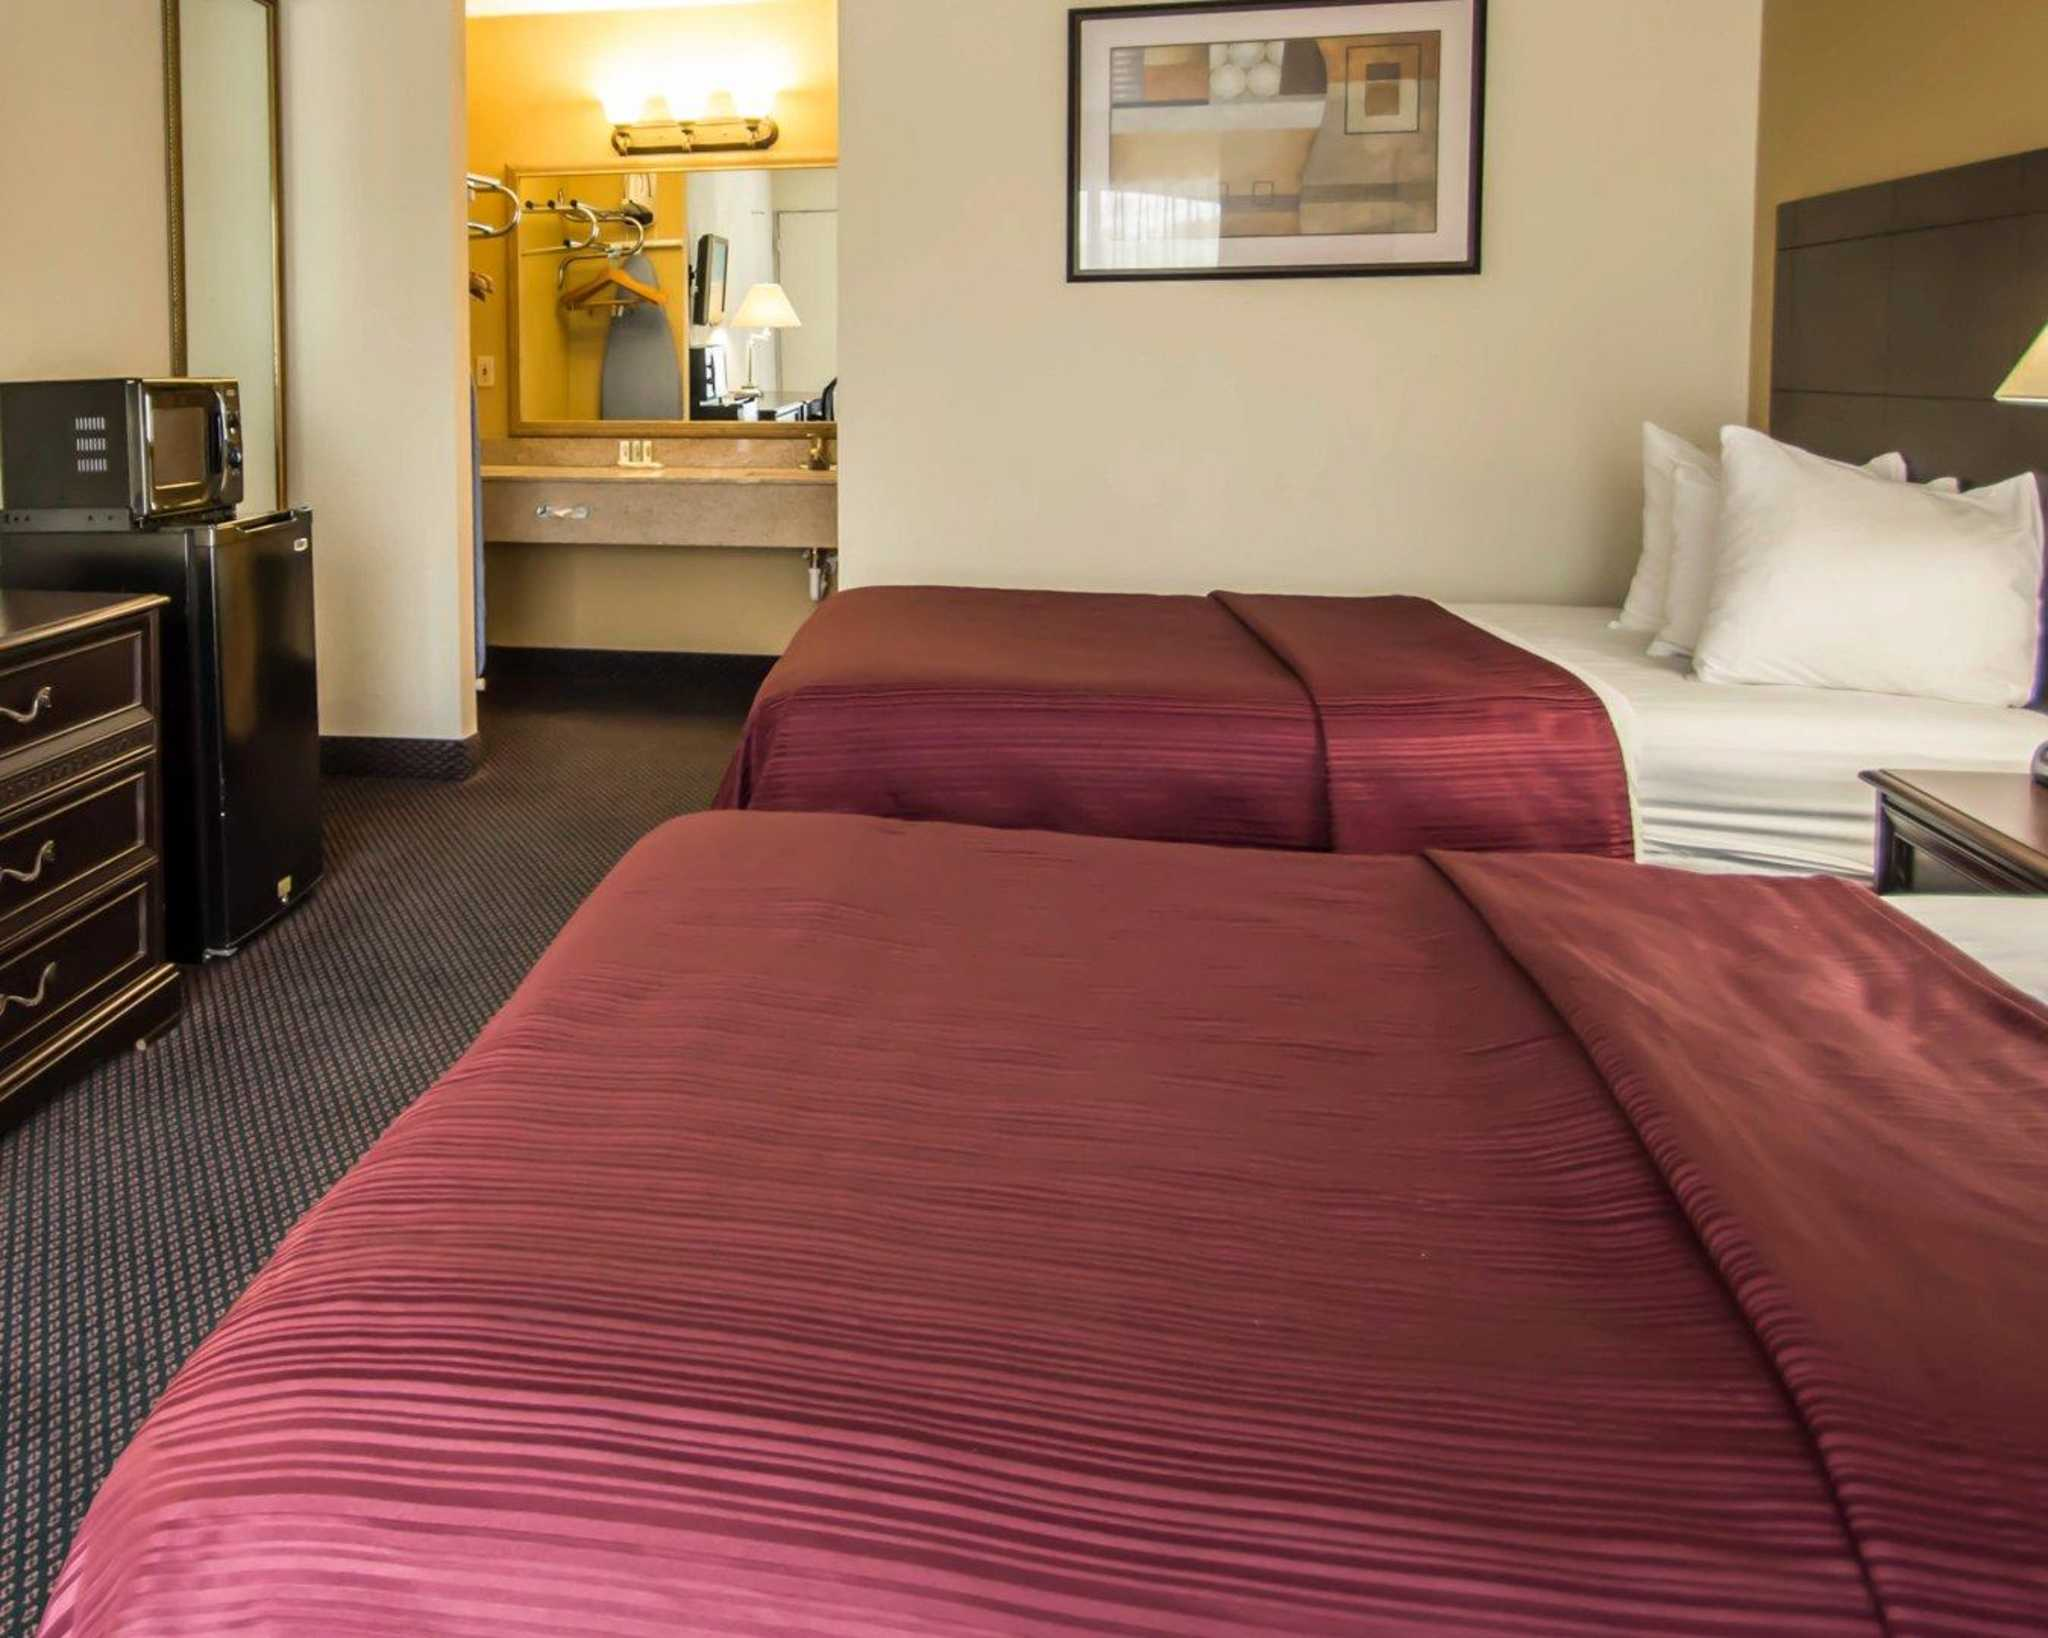 Quality Inn I-75 at Exit 399 image 10